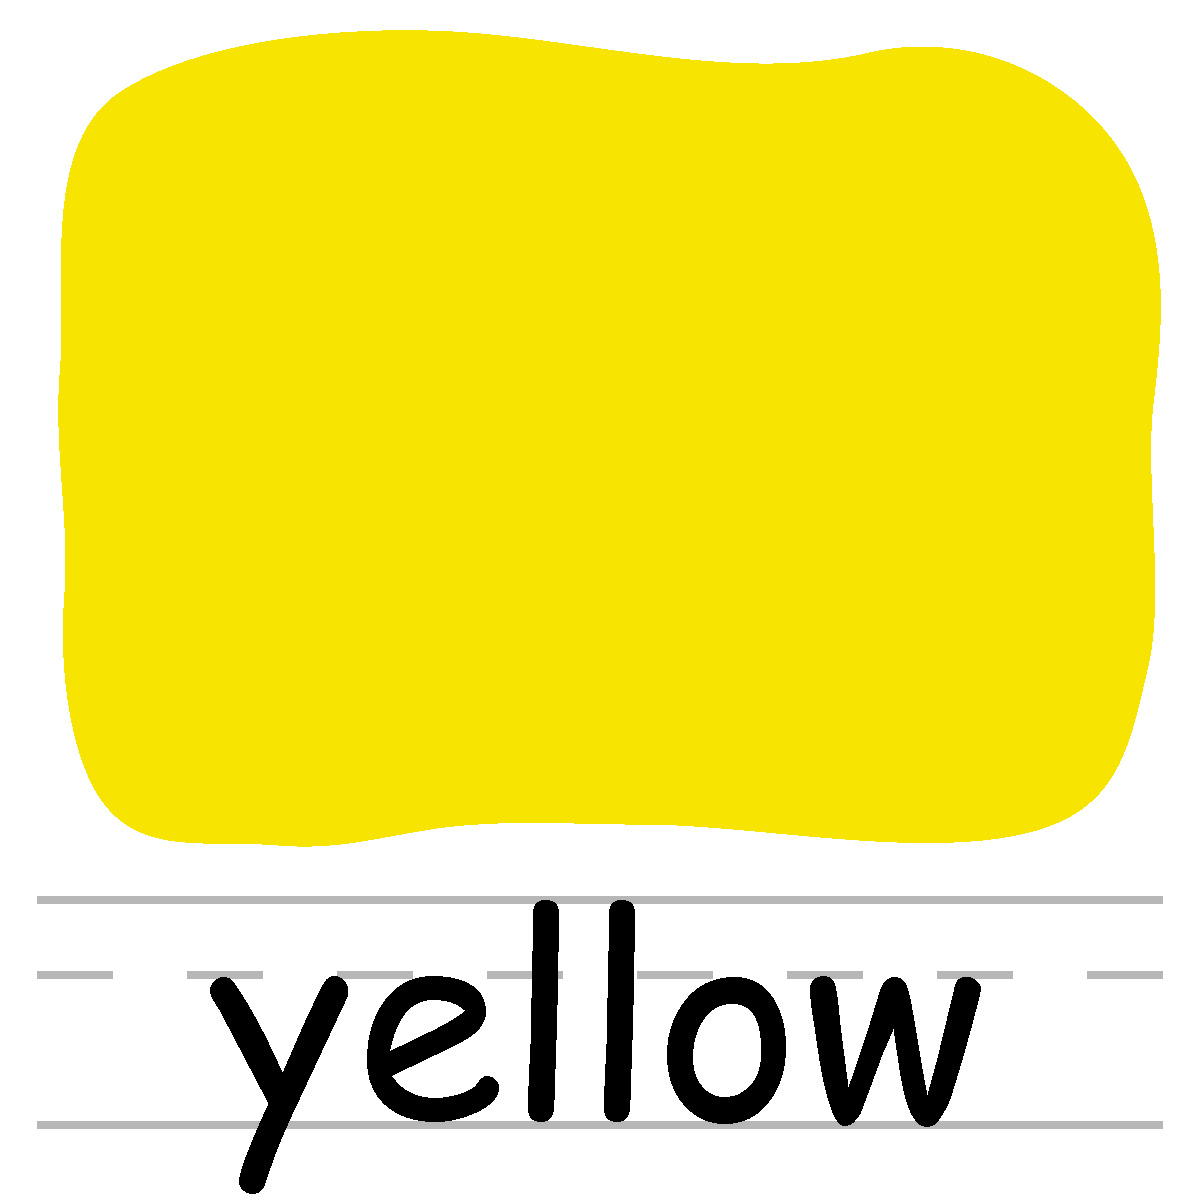 The yellow clipart download.